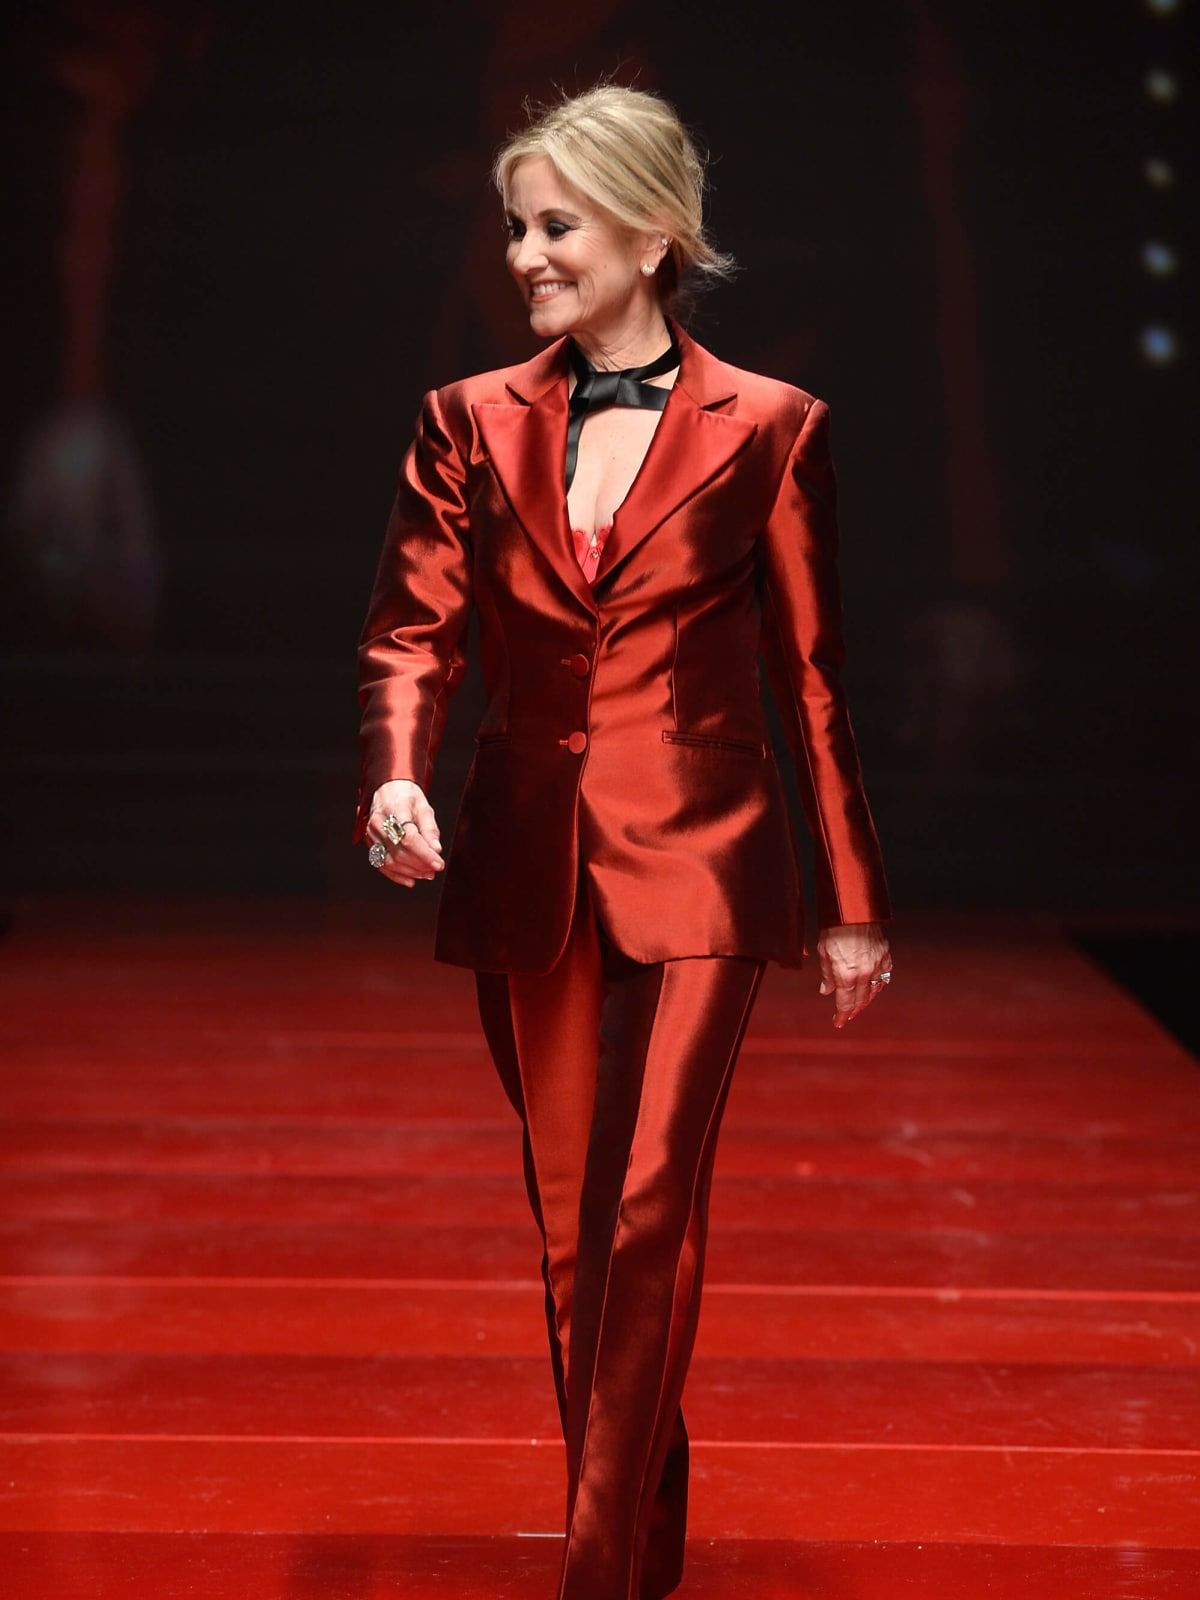 Actress Actress Maureen McCormick walks the runway at the American Heart Association's Go Red For Women Red Dress Collection 2017